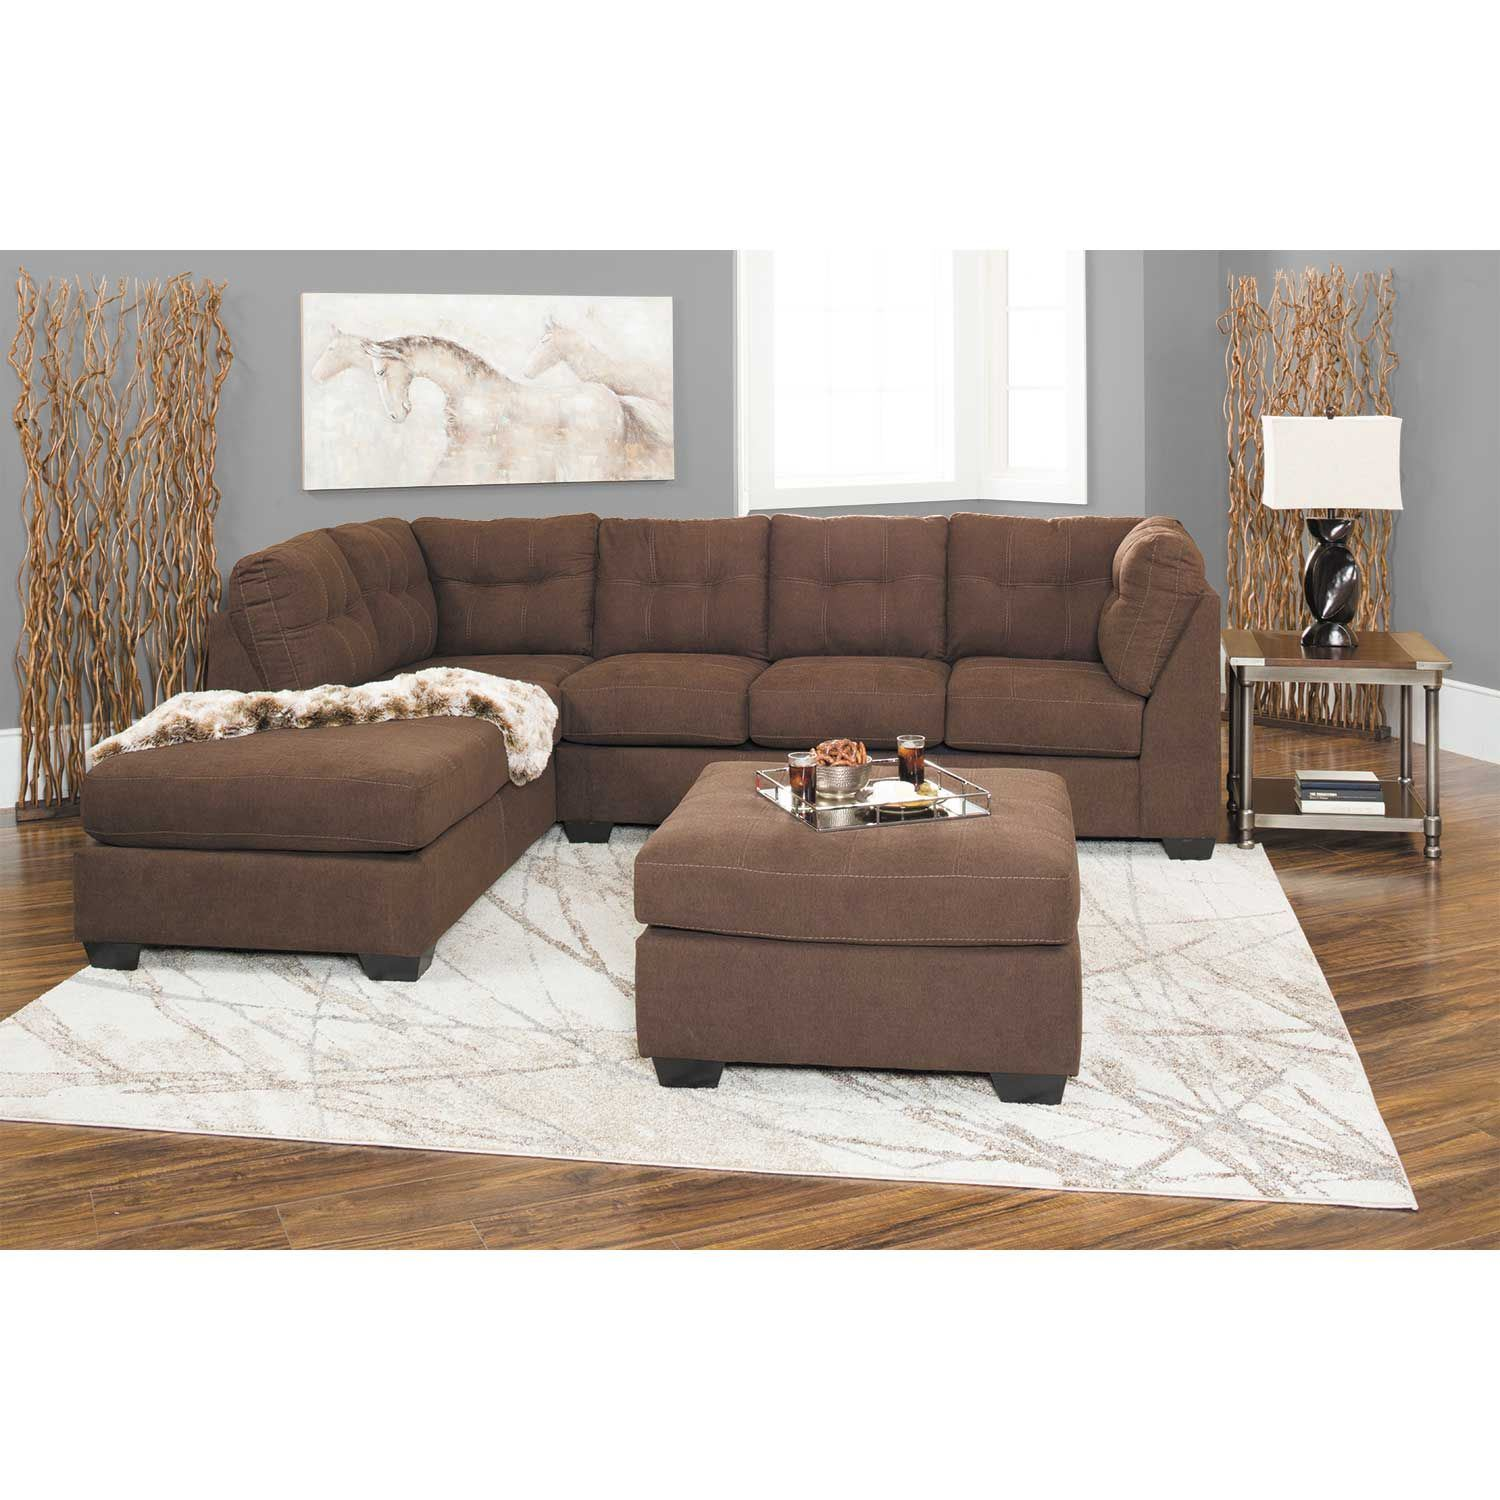 Maier walnut ottoman 4520108 ashley furniture afw Ashley home furniture weekly ad